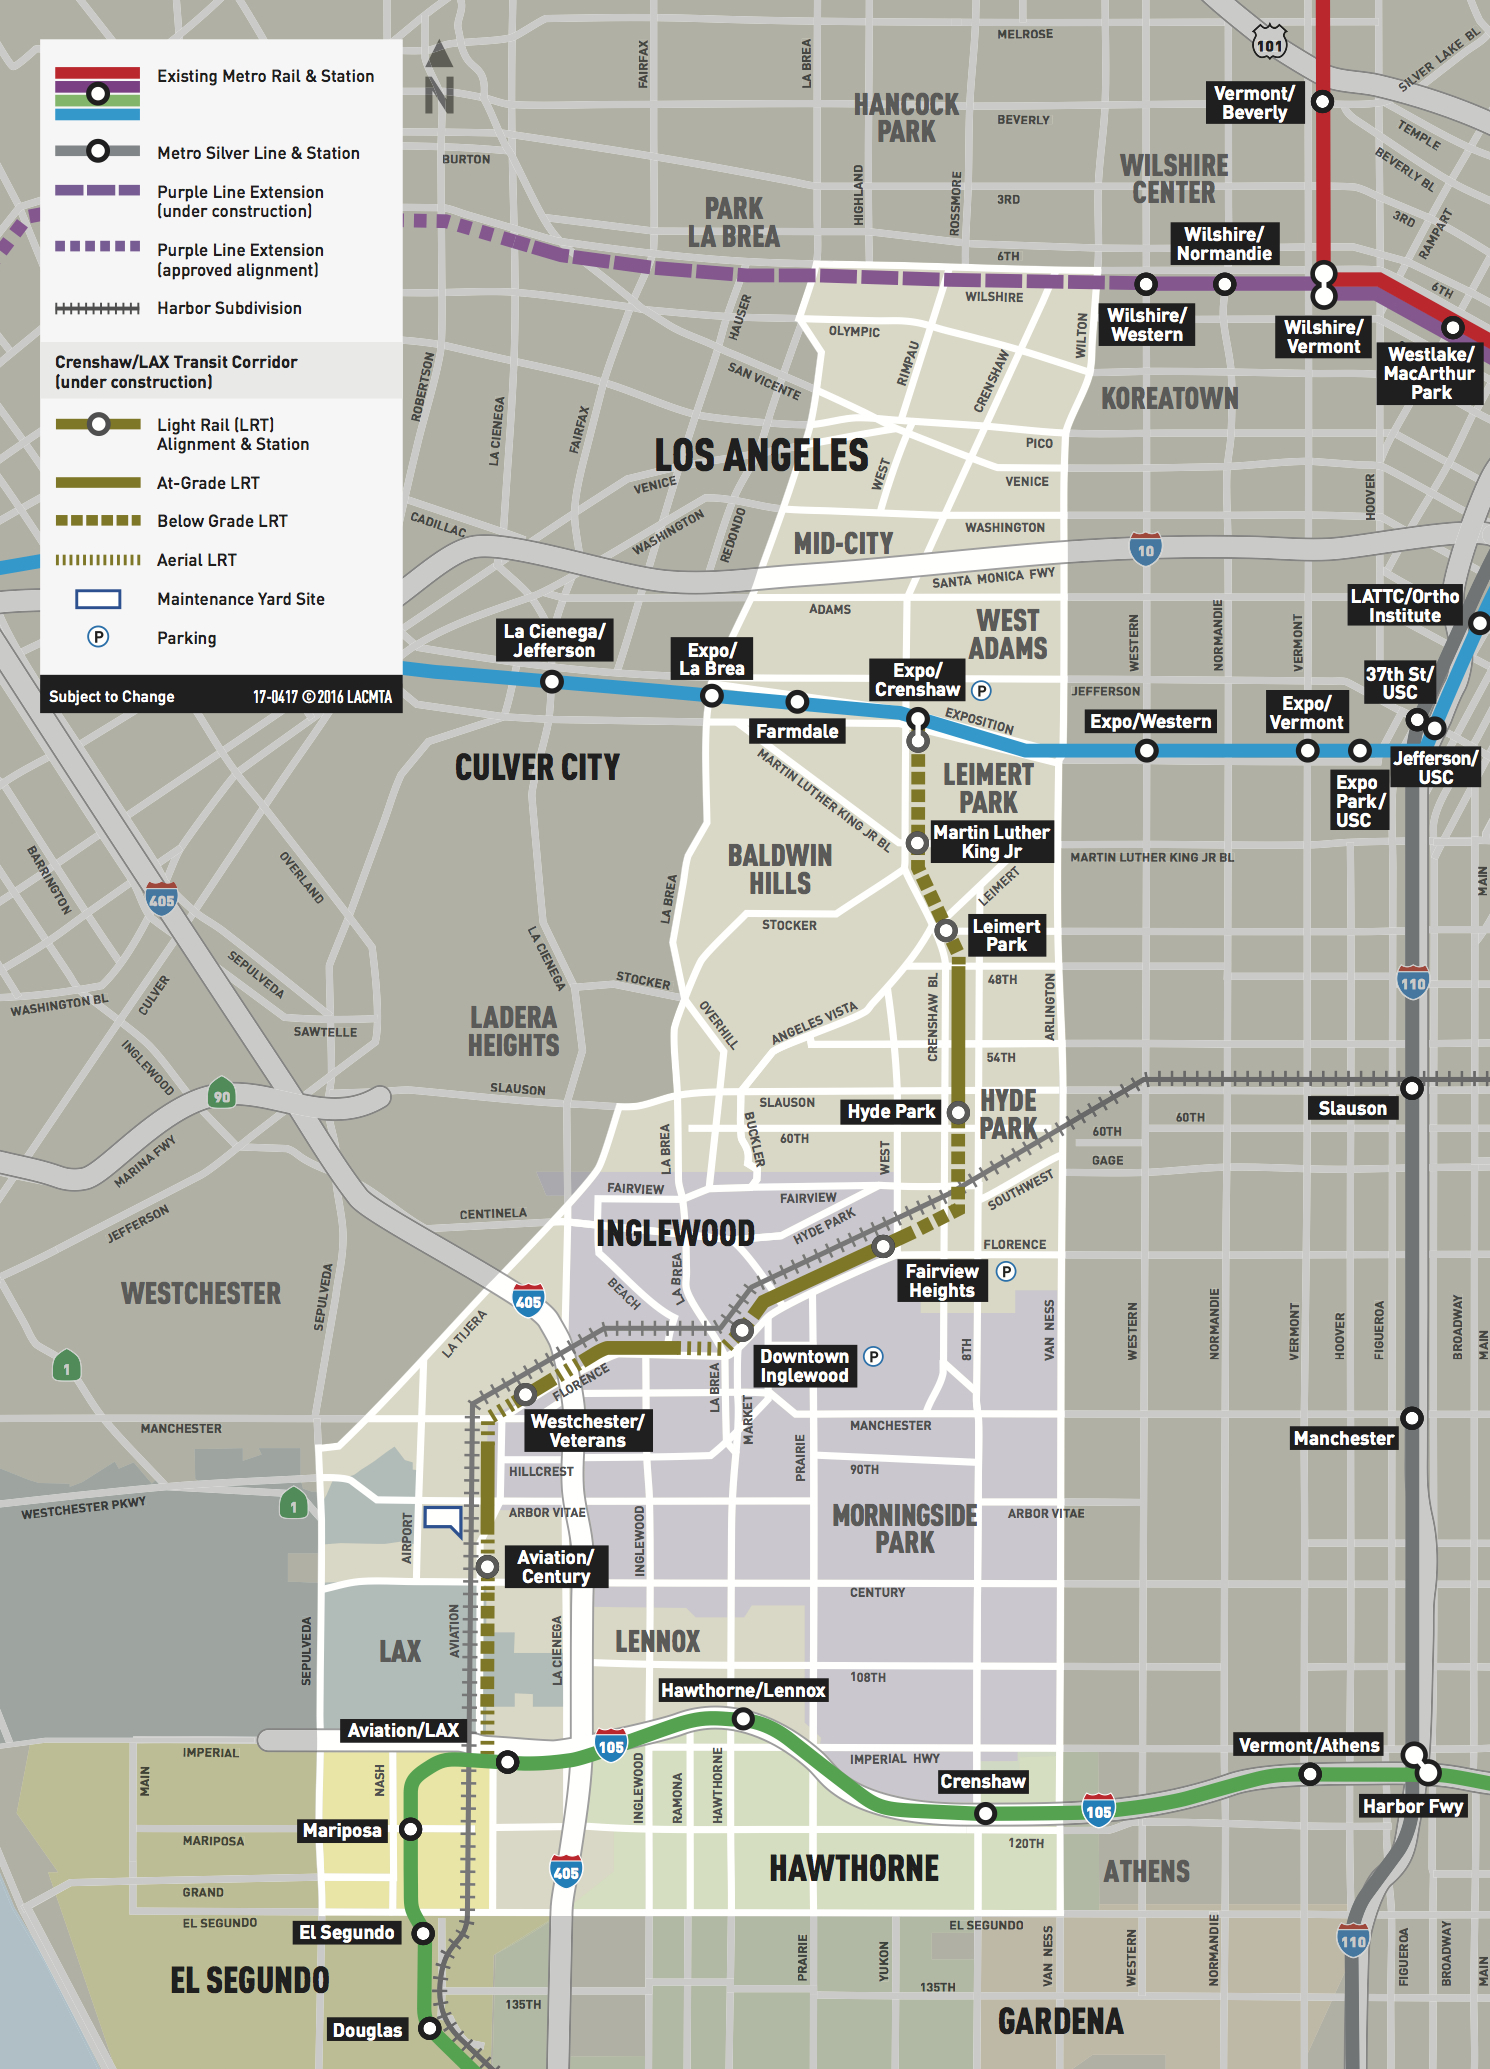 Go Metro To Clippers In Inglewood How We Roll June The Source - Inglewood map